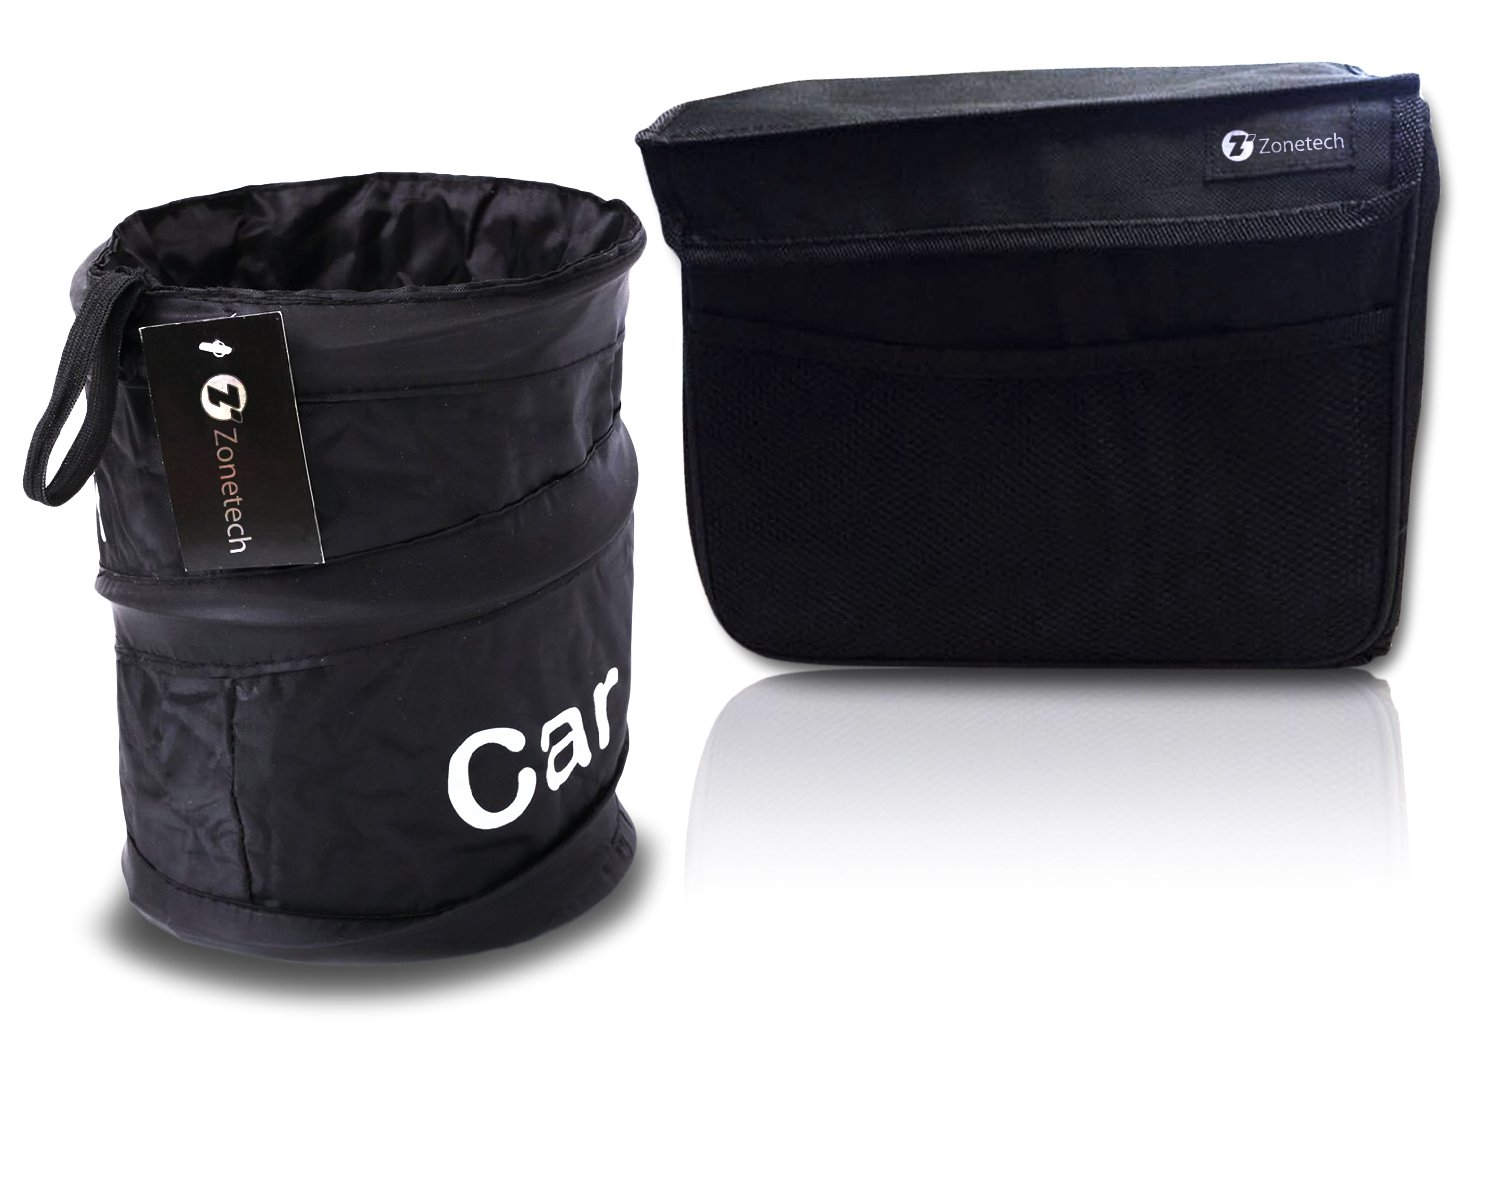 zone tech collapsible pop up leak proof trash can and extra large litter bag ebay. Black Bedroom Furniture Sets. Home Design Ideas